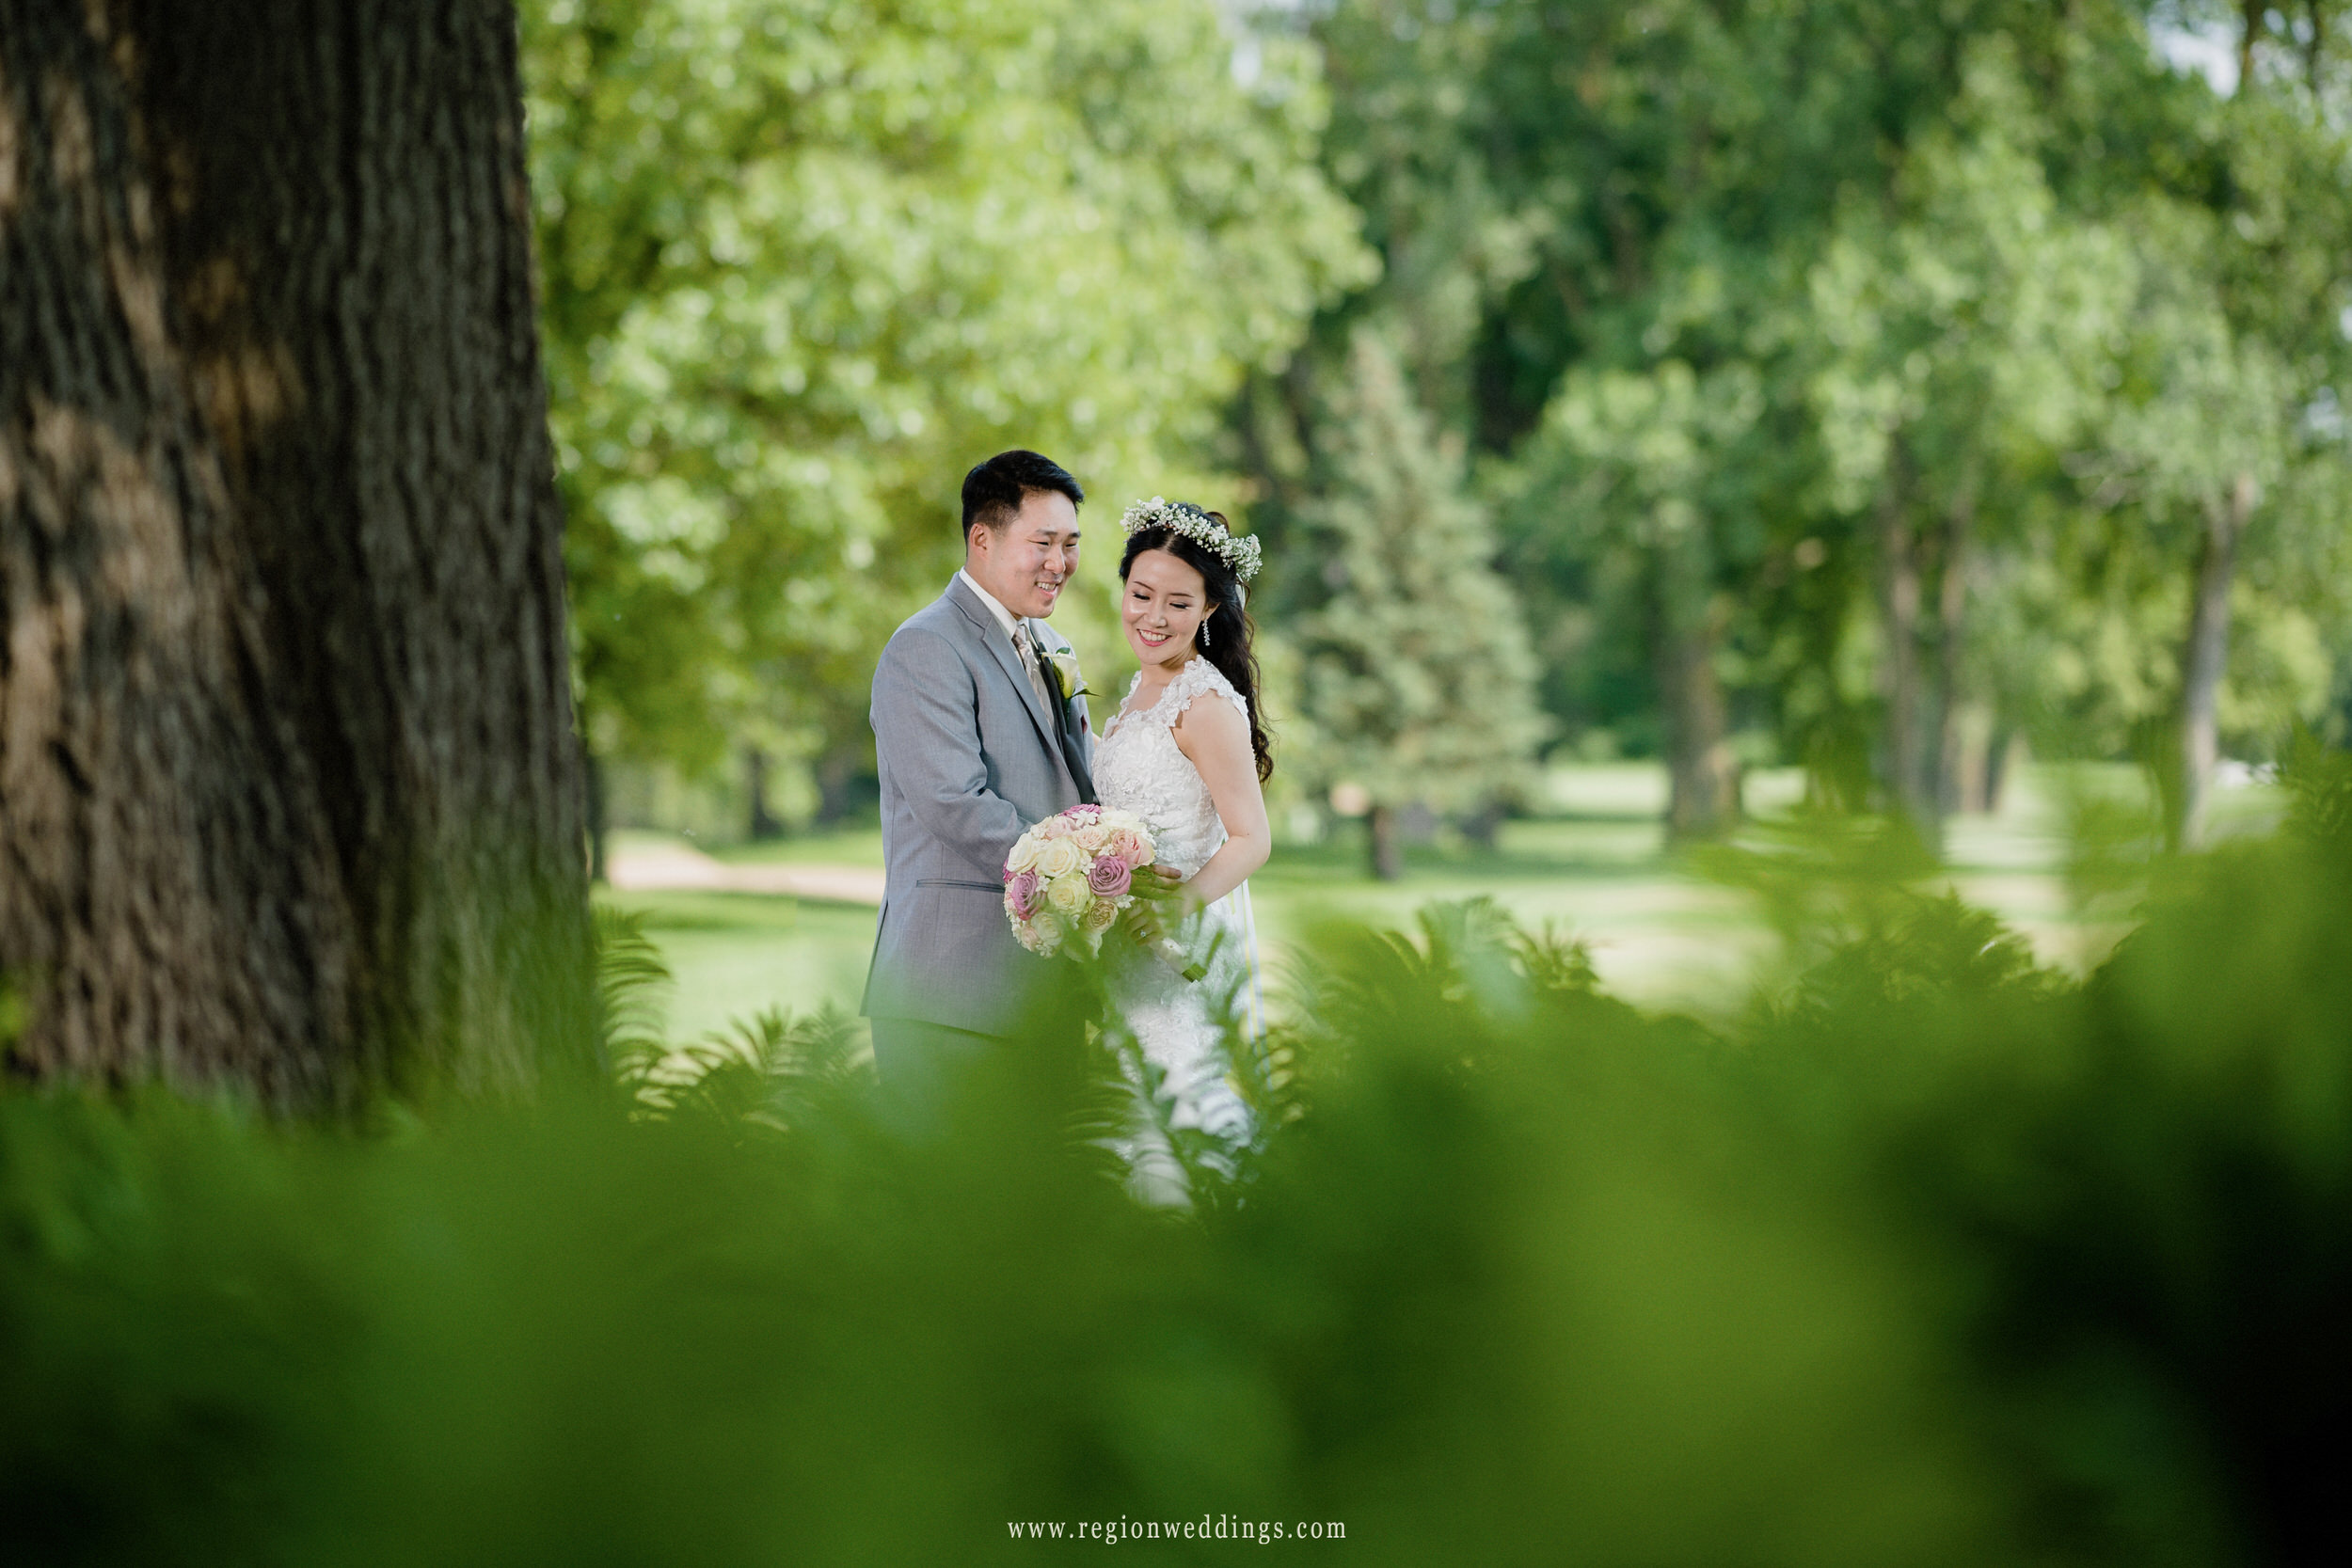 Bridal portrait surrounded by greenery at Briar Ridge Golf Course in Dyer, Indiana.